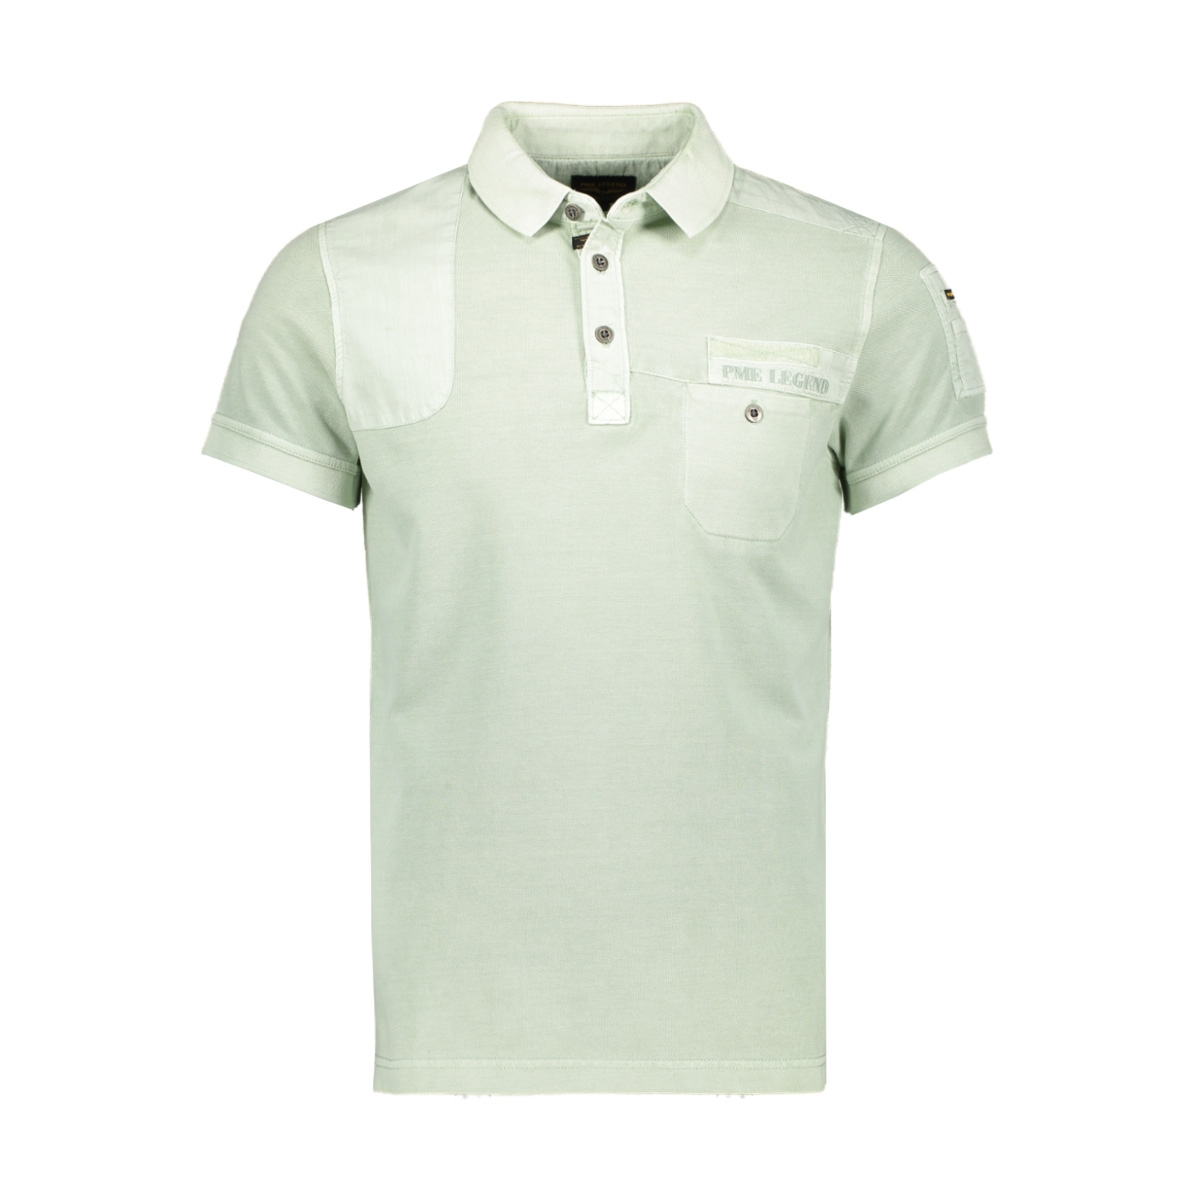 ppss191855 pme legend polo 6174